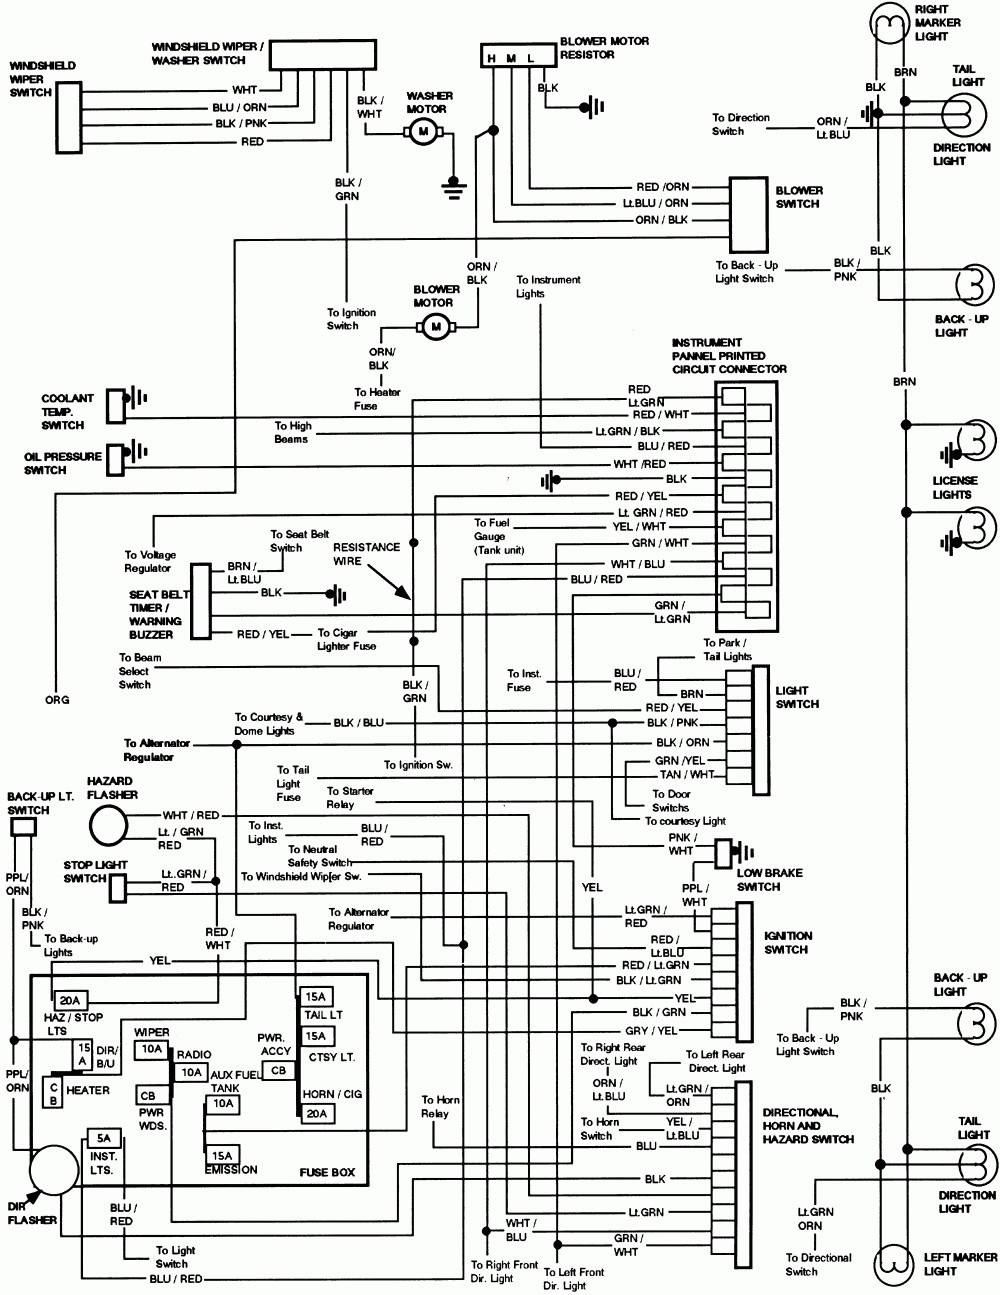 medium resolution of wiring diagram for 1989 wiring diagram today1989 f150 headlight wiring diagram wiring diagram for you wiring